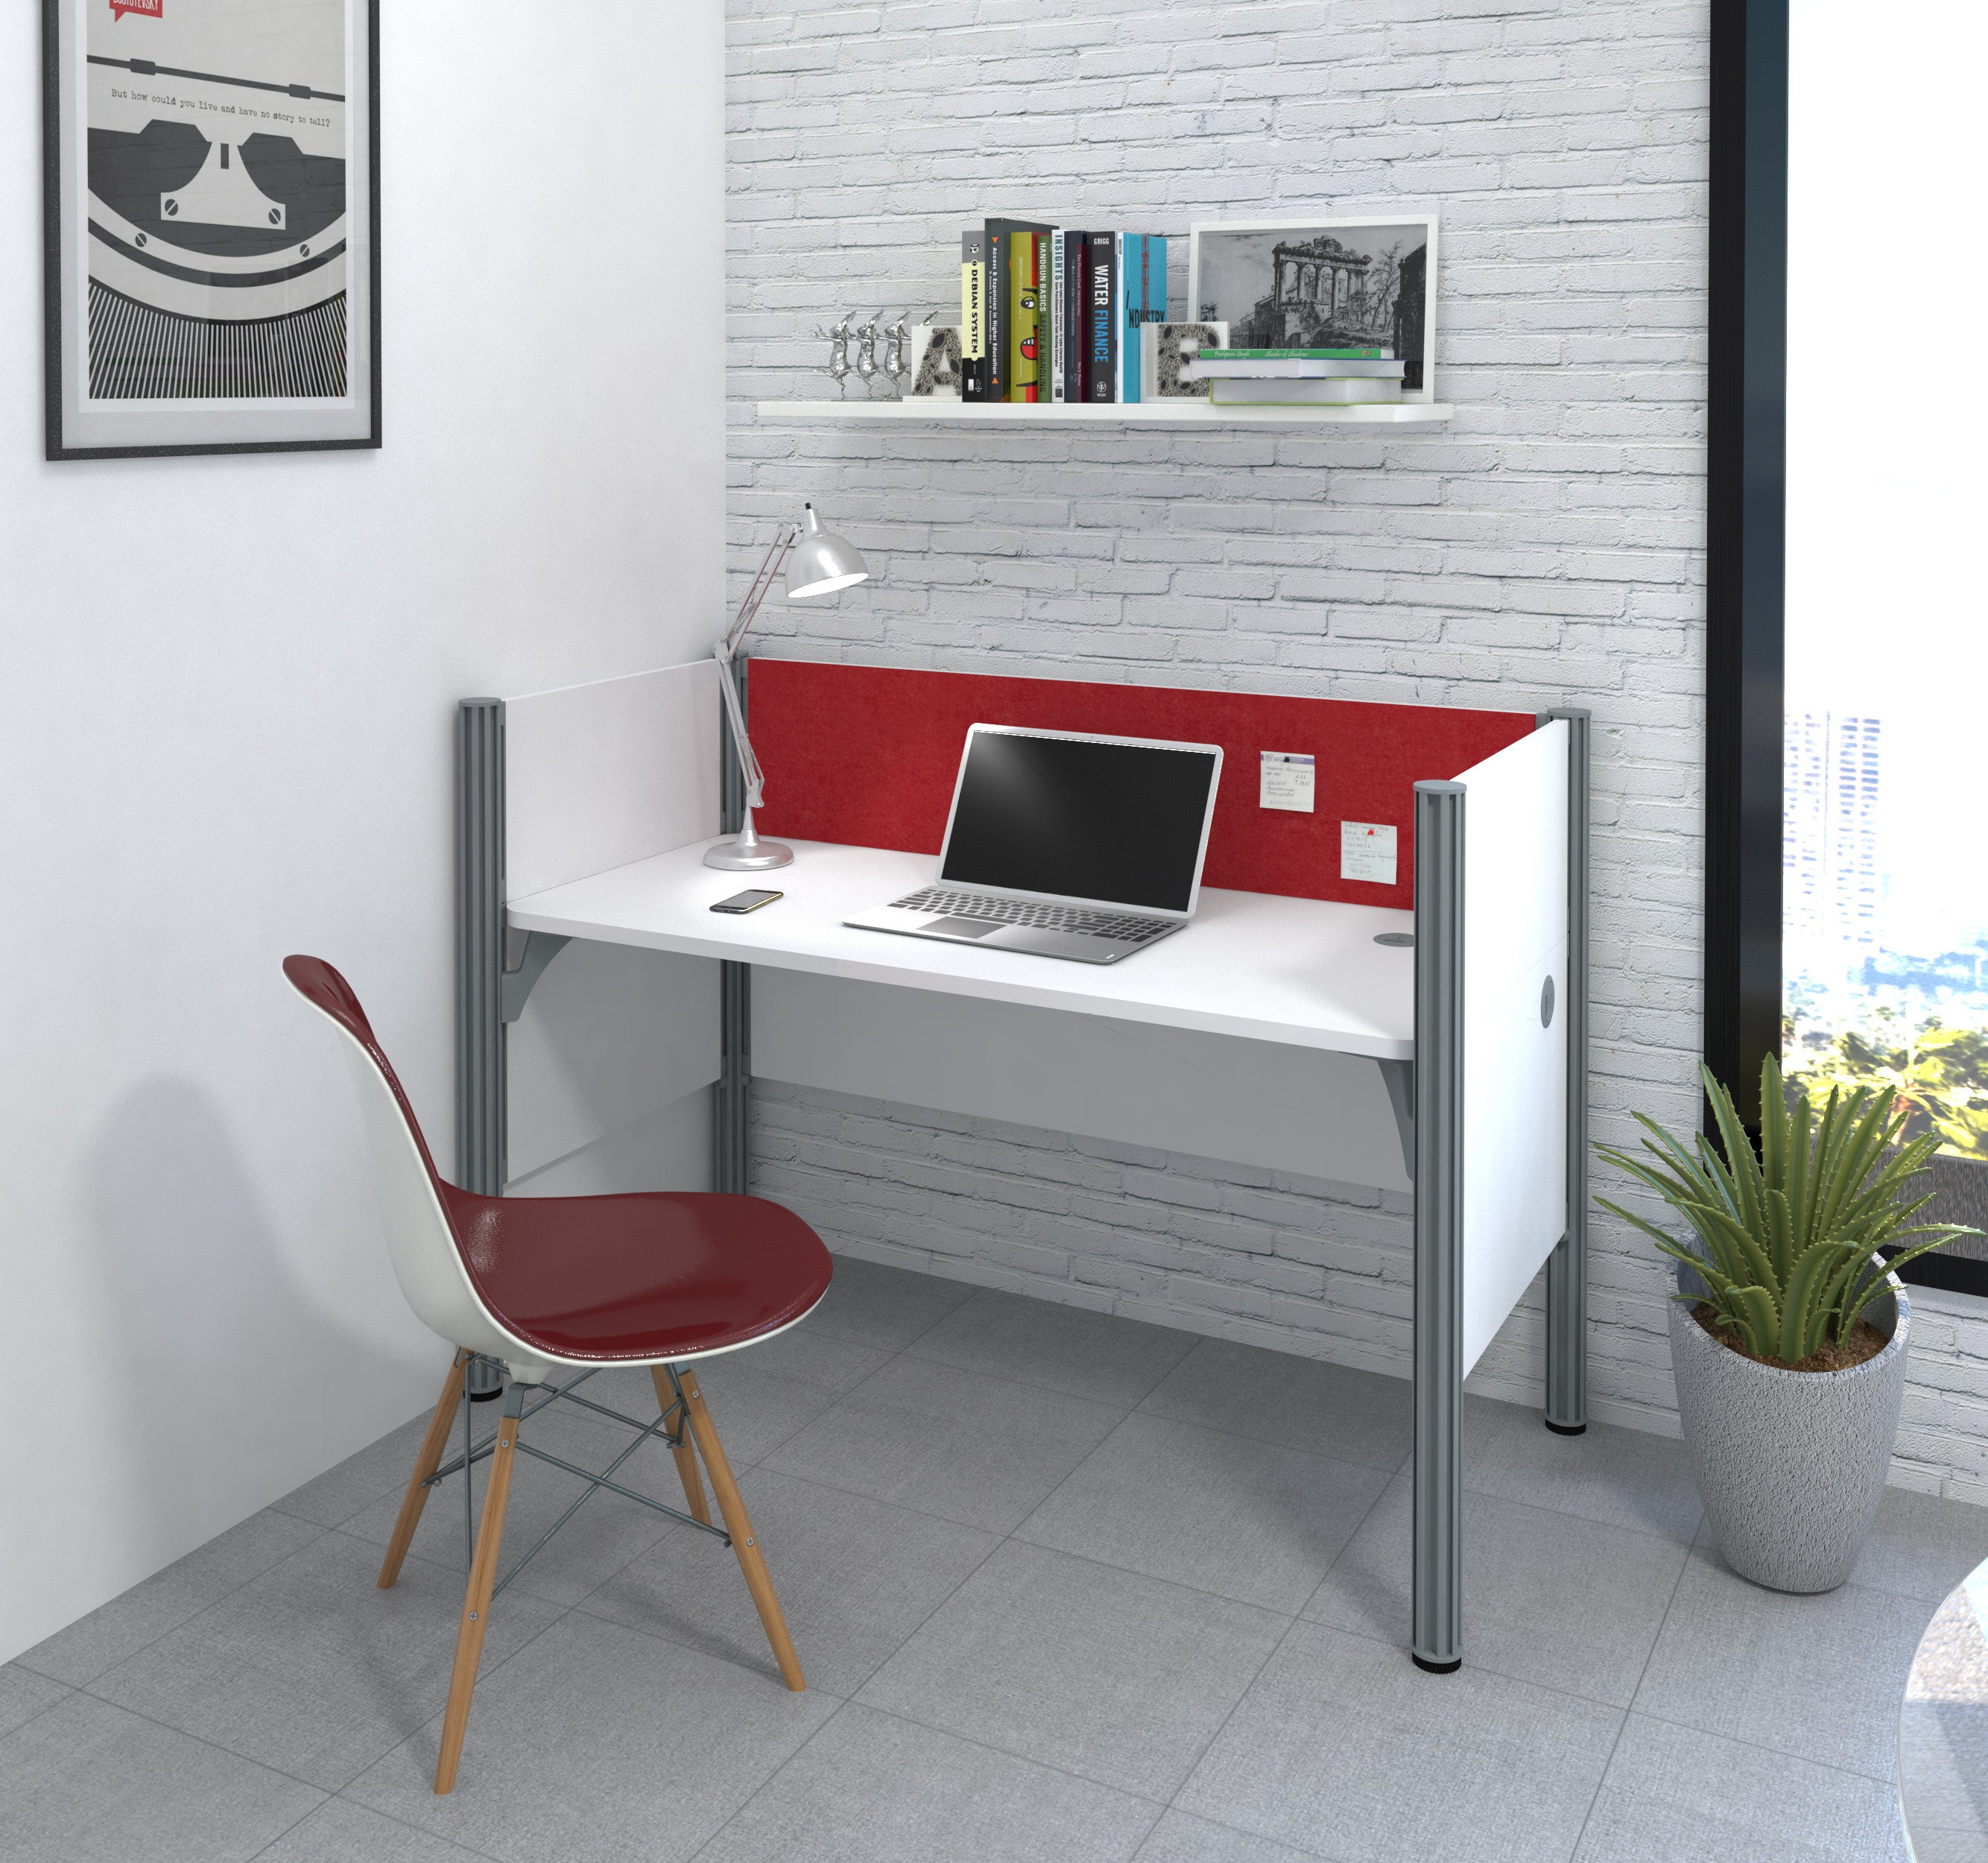 "Pro-Biz White 62"" Workstation with Privacy Panel & Red Tack Board"